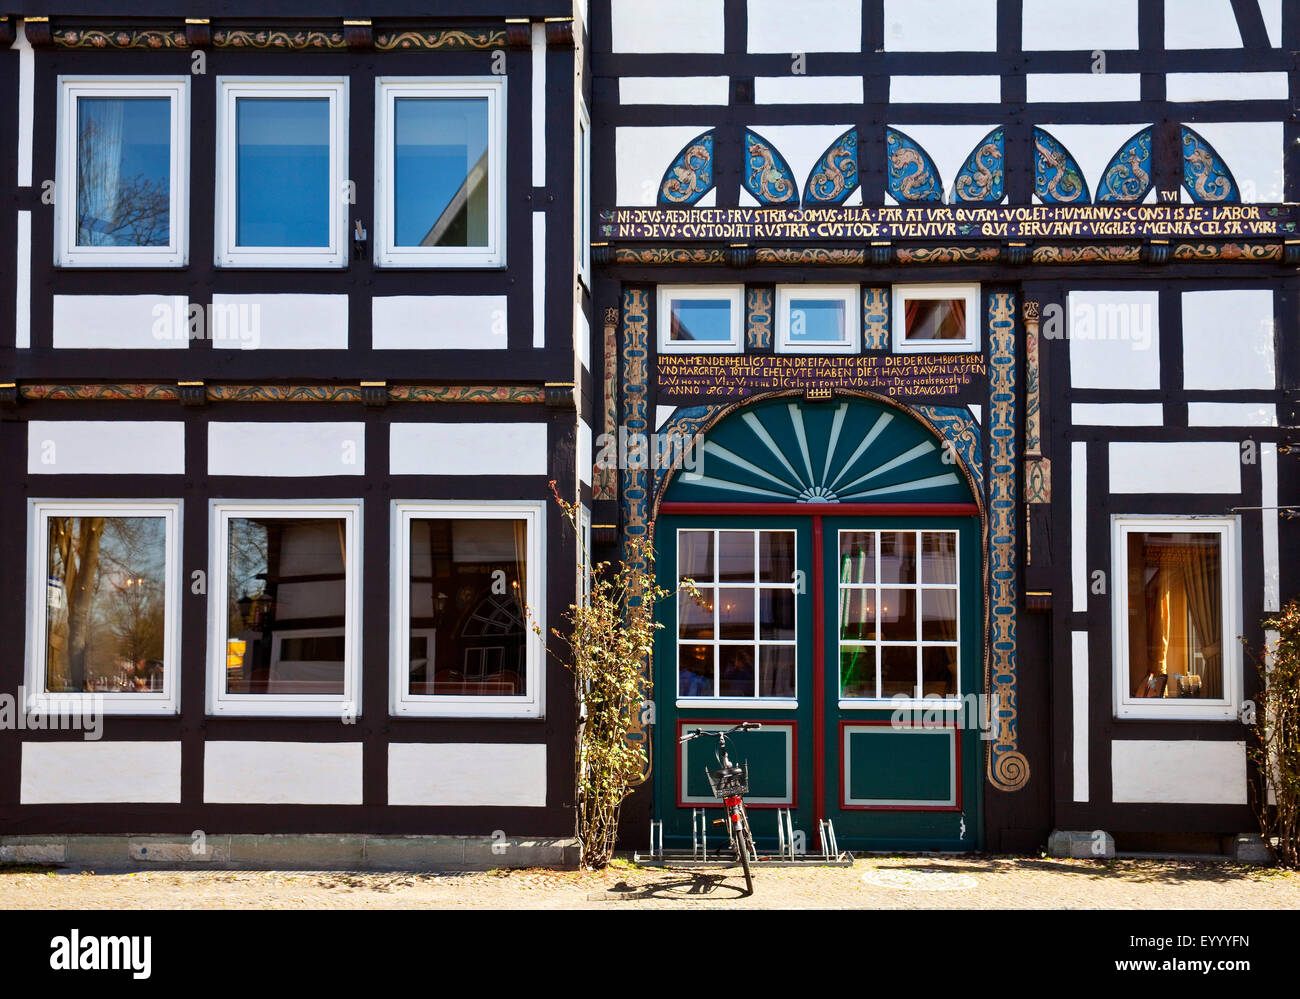 timber-framed vestibule house in the historic old town of Wiedenbrueck, Germany, North Rhine-Westphalia, East Westphalia, - Stock Image